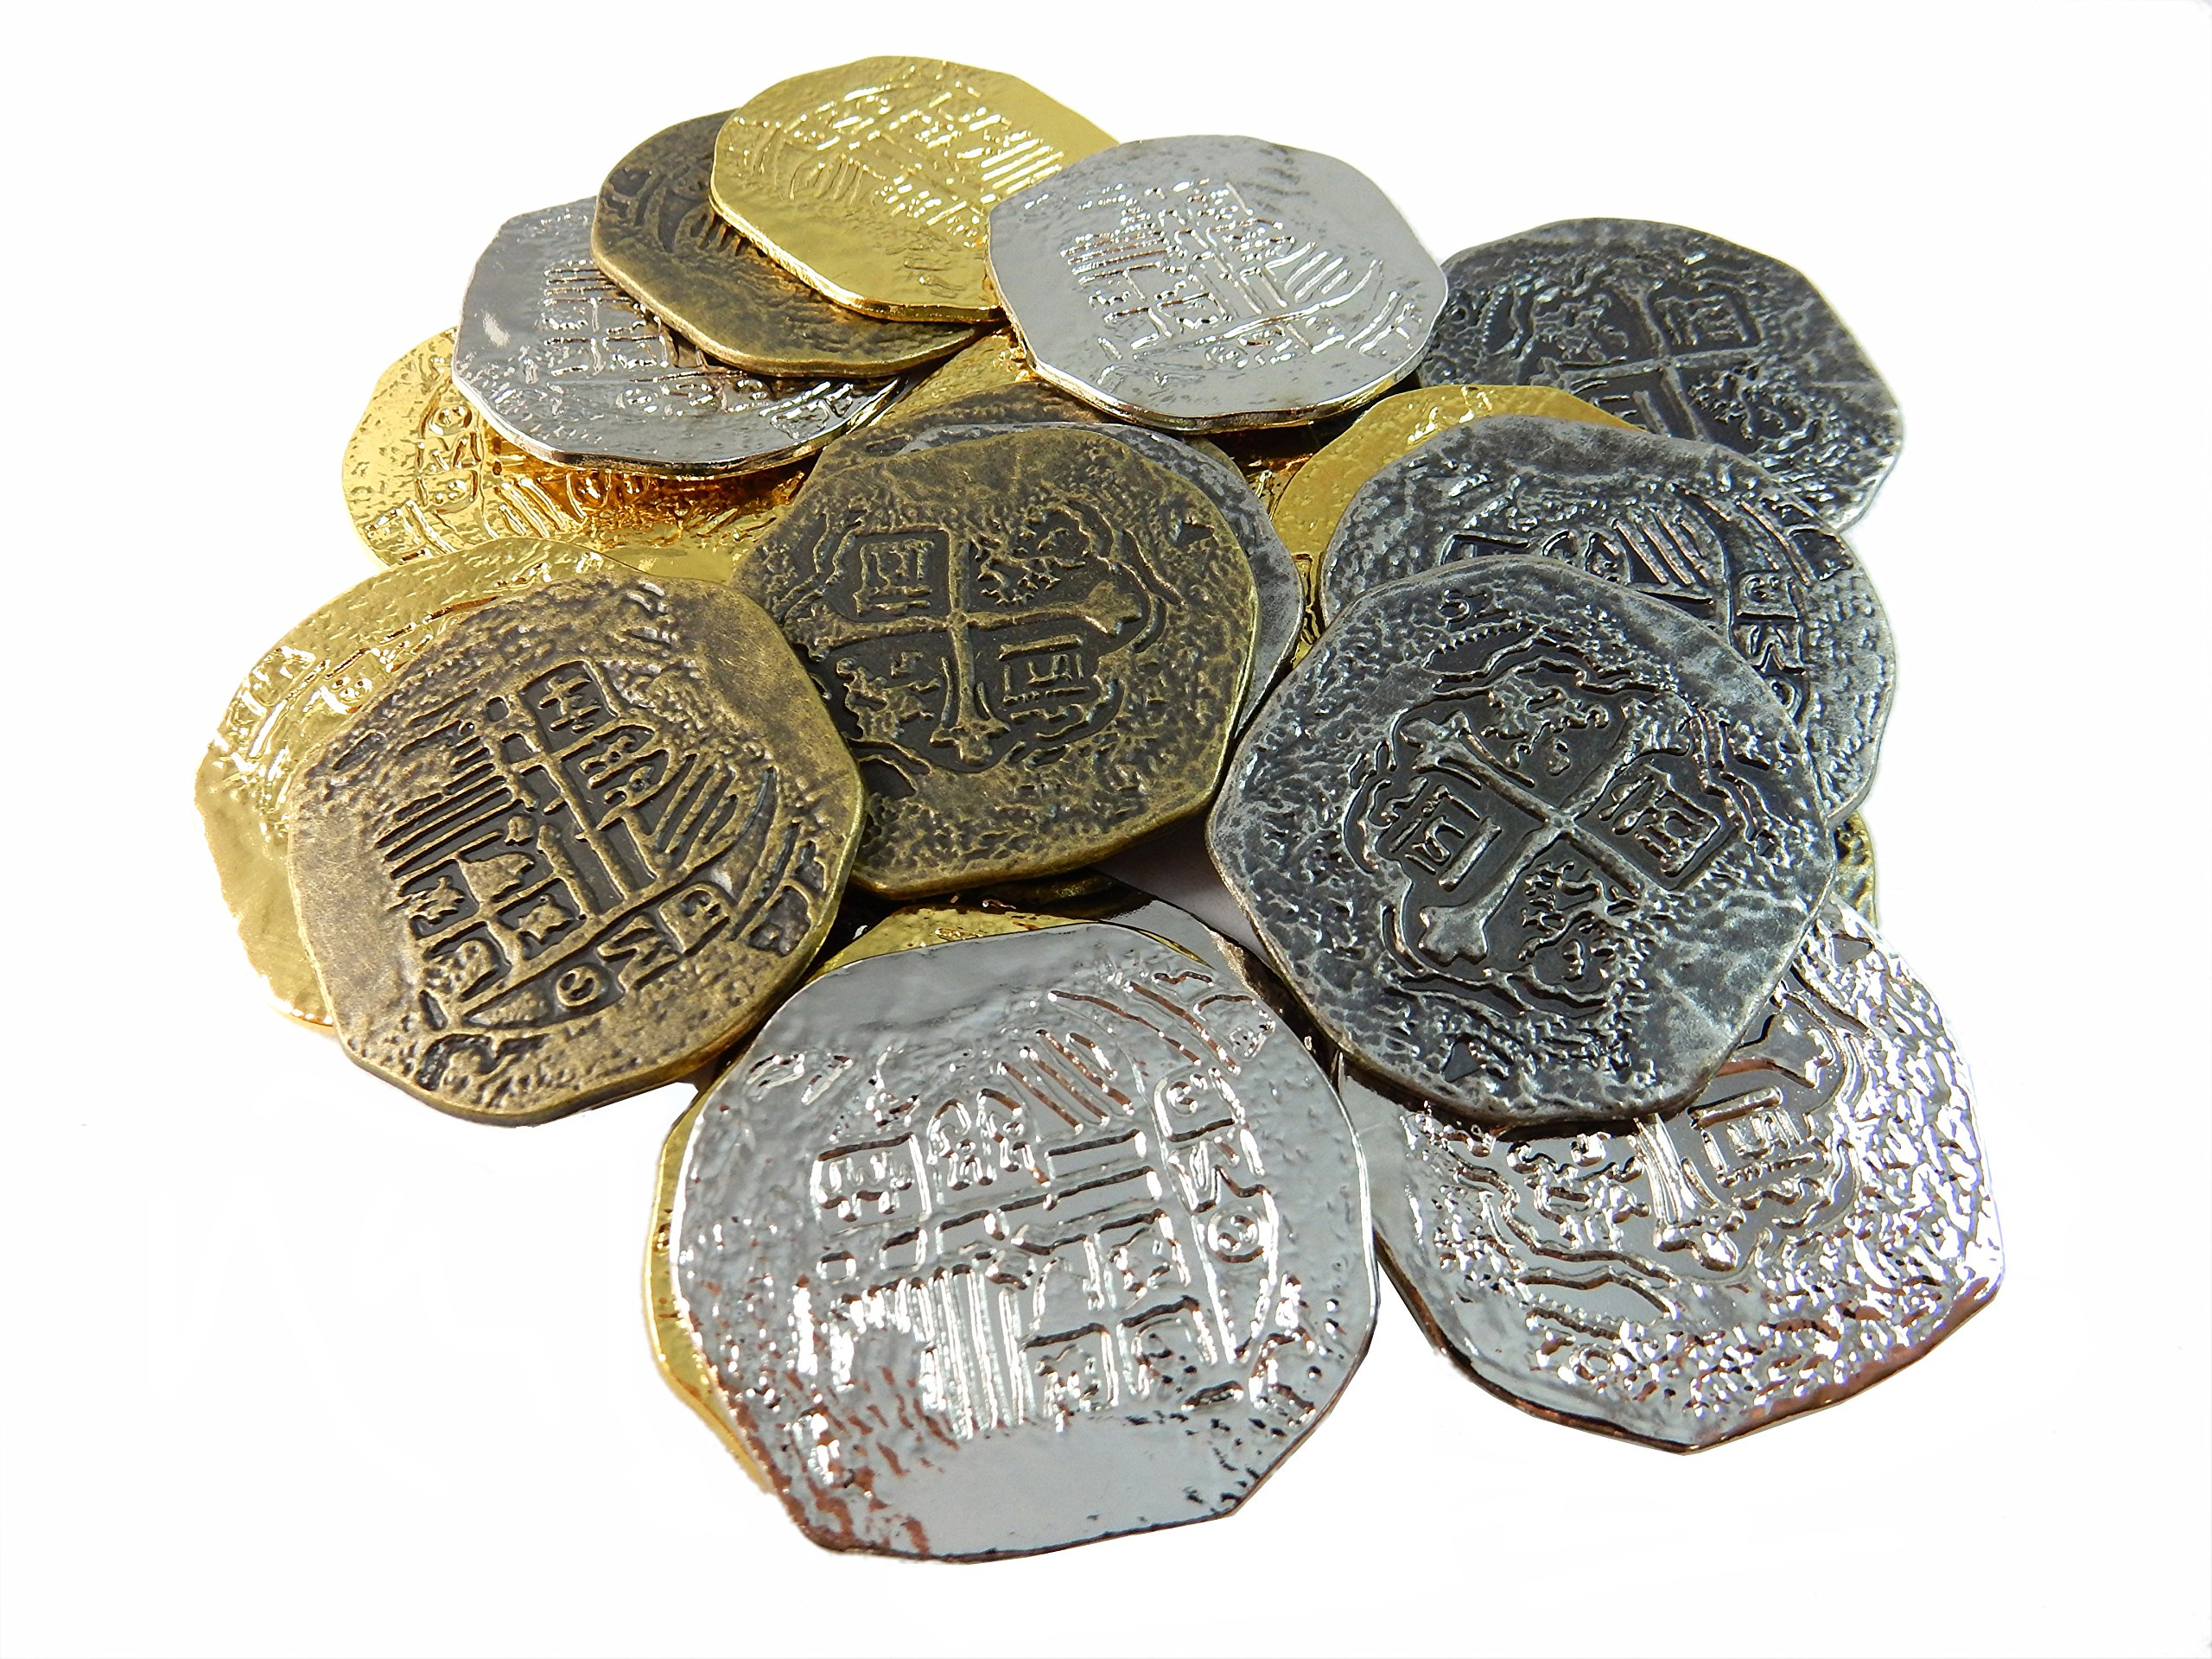 Large Metal Pirate Treasure Coins - 1000 Gold and Silver Doubloon Replicas - Toy Pirate Coins